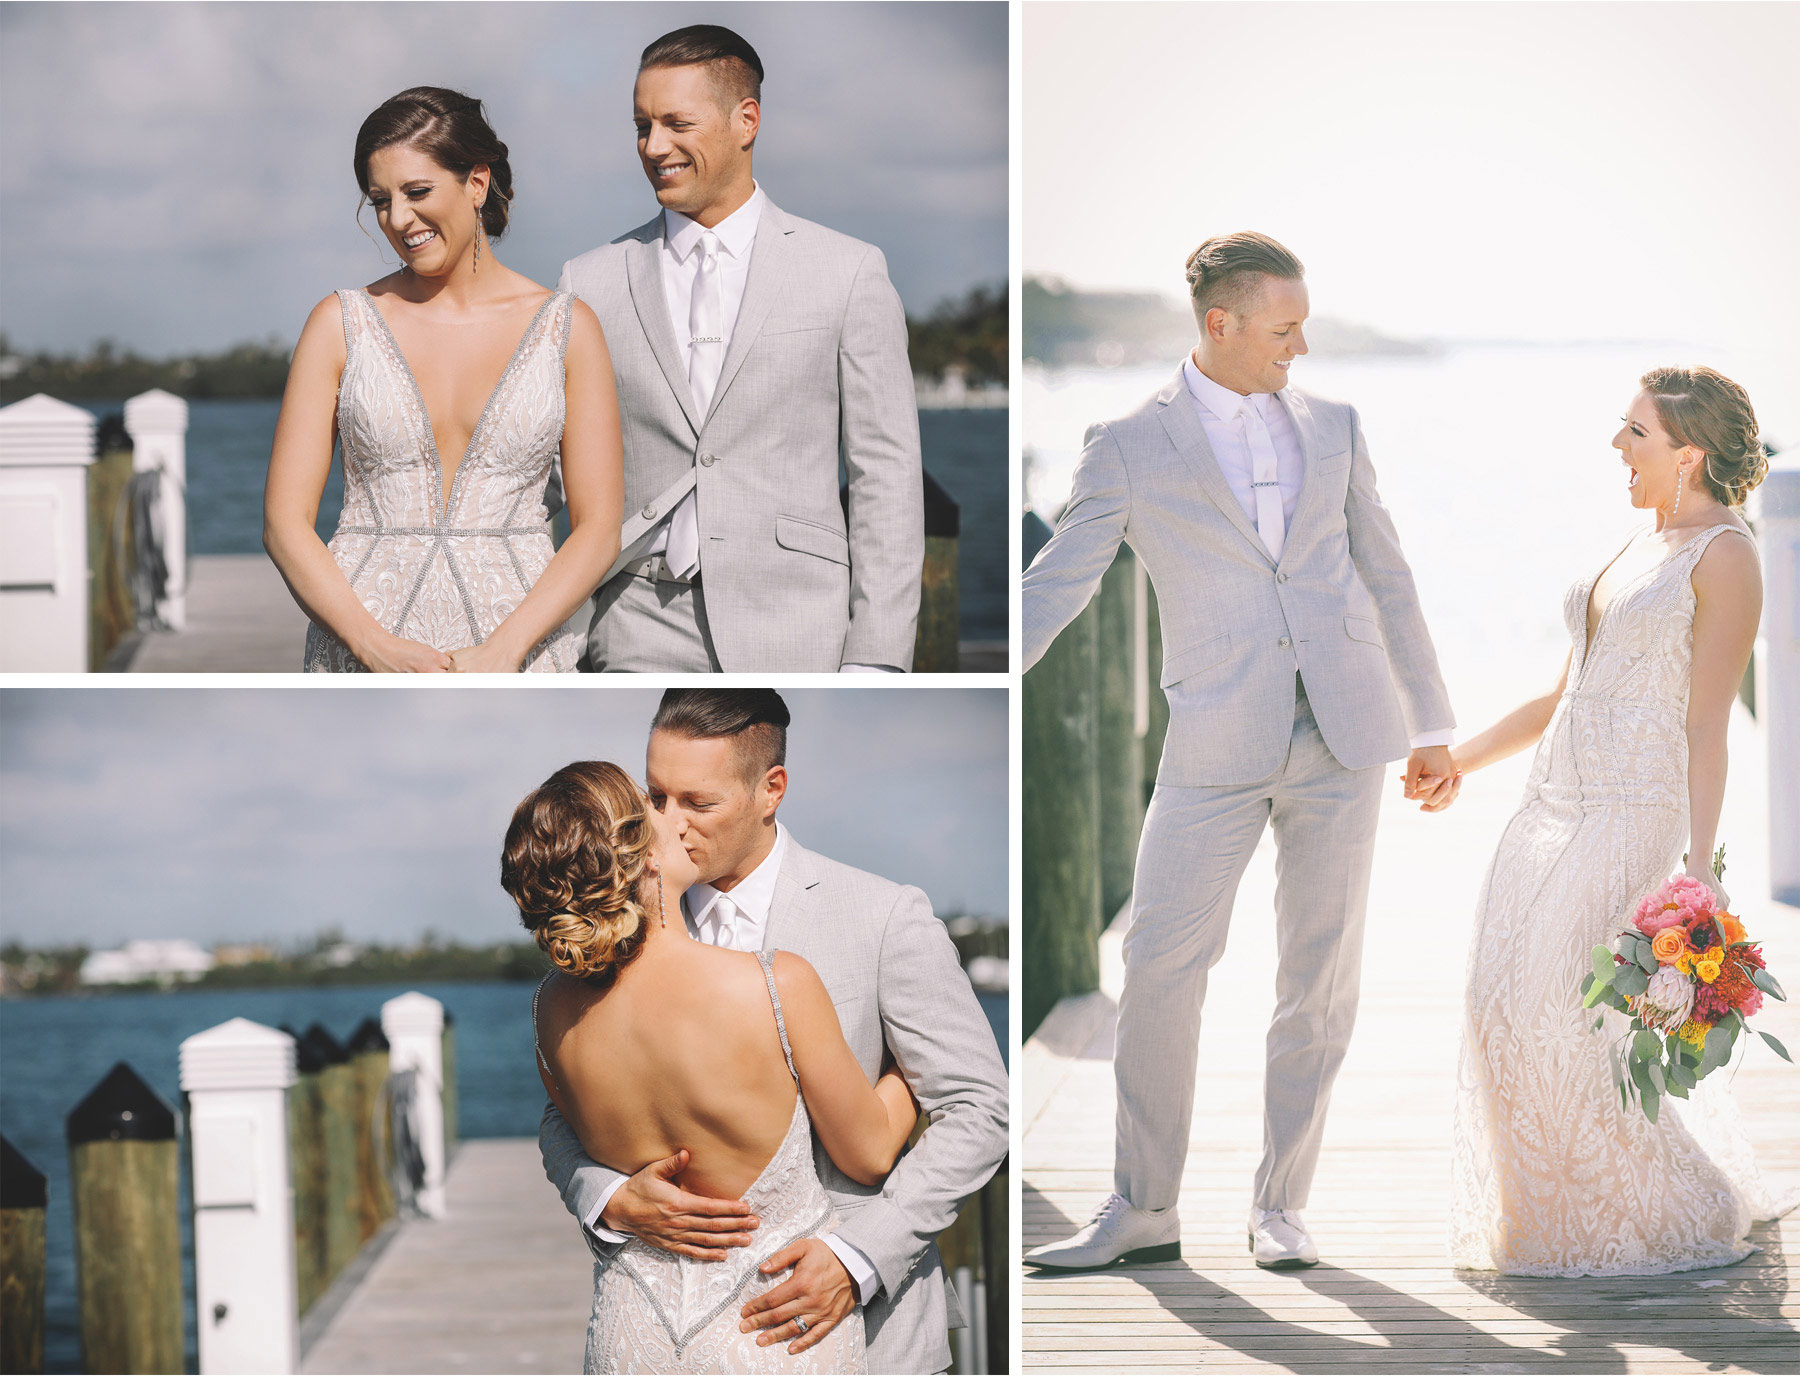 06-Key-Largo-Florida-Keys-Wedding-Photographer-by-Andrew-Vick-Photography-Playa-Largo-Resort-and-Spa-Hotel-Destination-Winter-First-Meeting-Look-Bride-Groom-Docks-Kiss-Excitement-Flowers-Ocean-Water-Vintage-Carrie-and-Brian.jpg